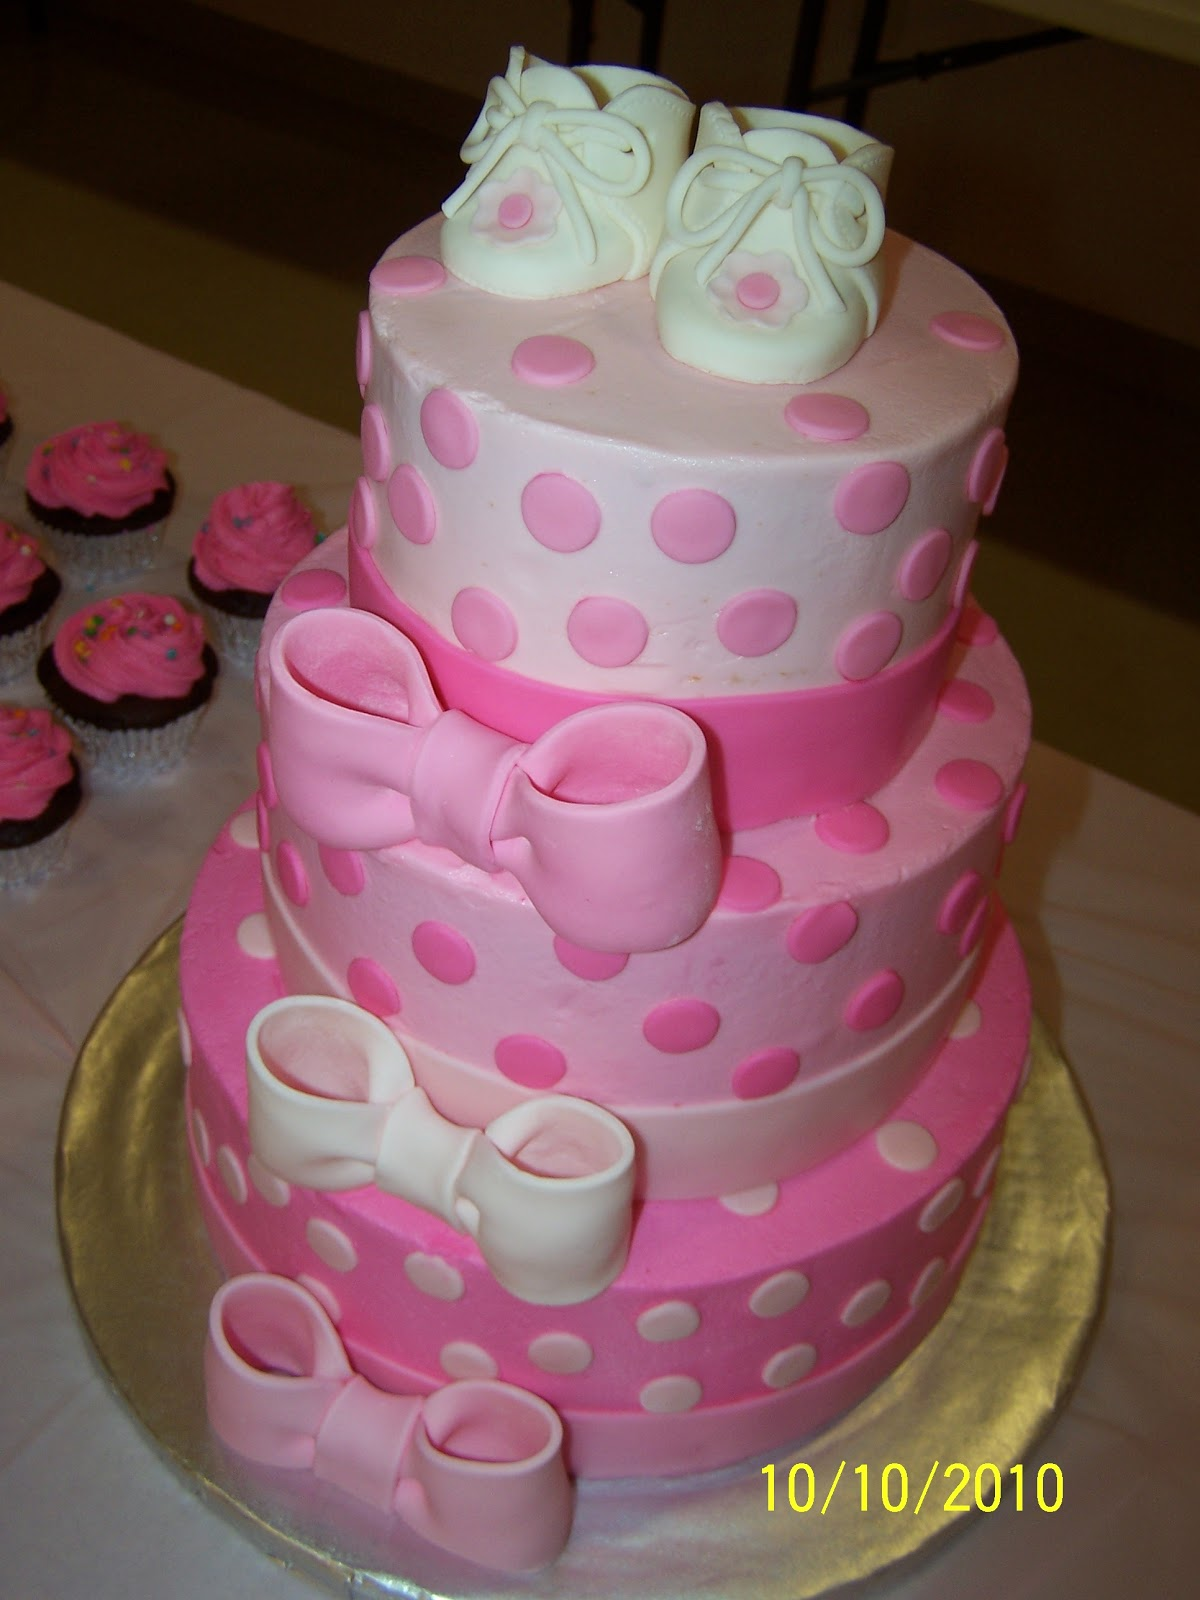 Cakes by Kristen H.: Pink bows and dots Baby Shower Cake